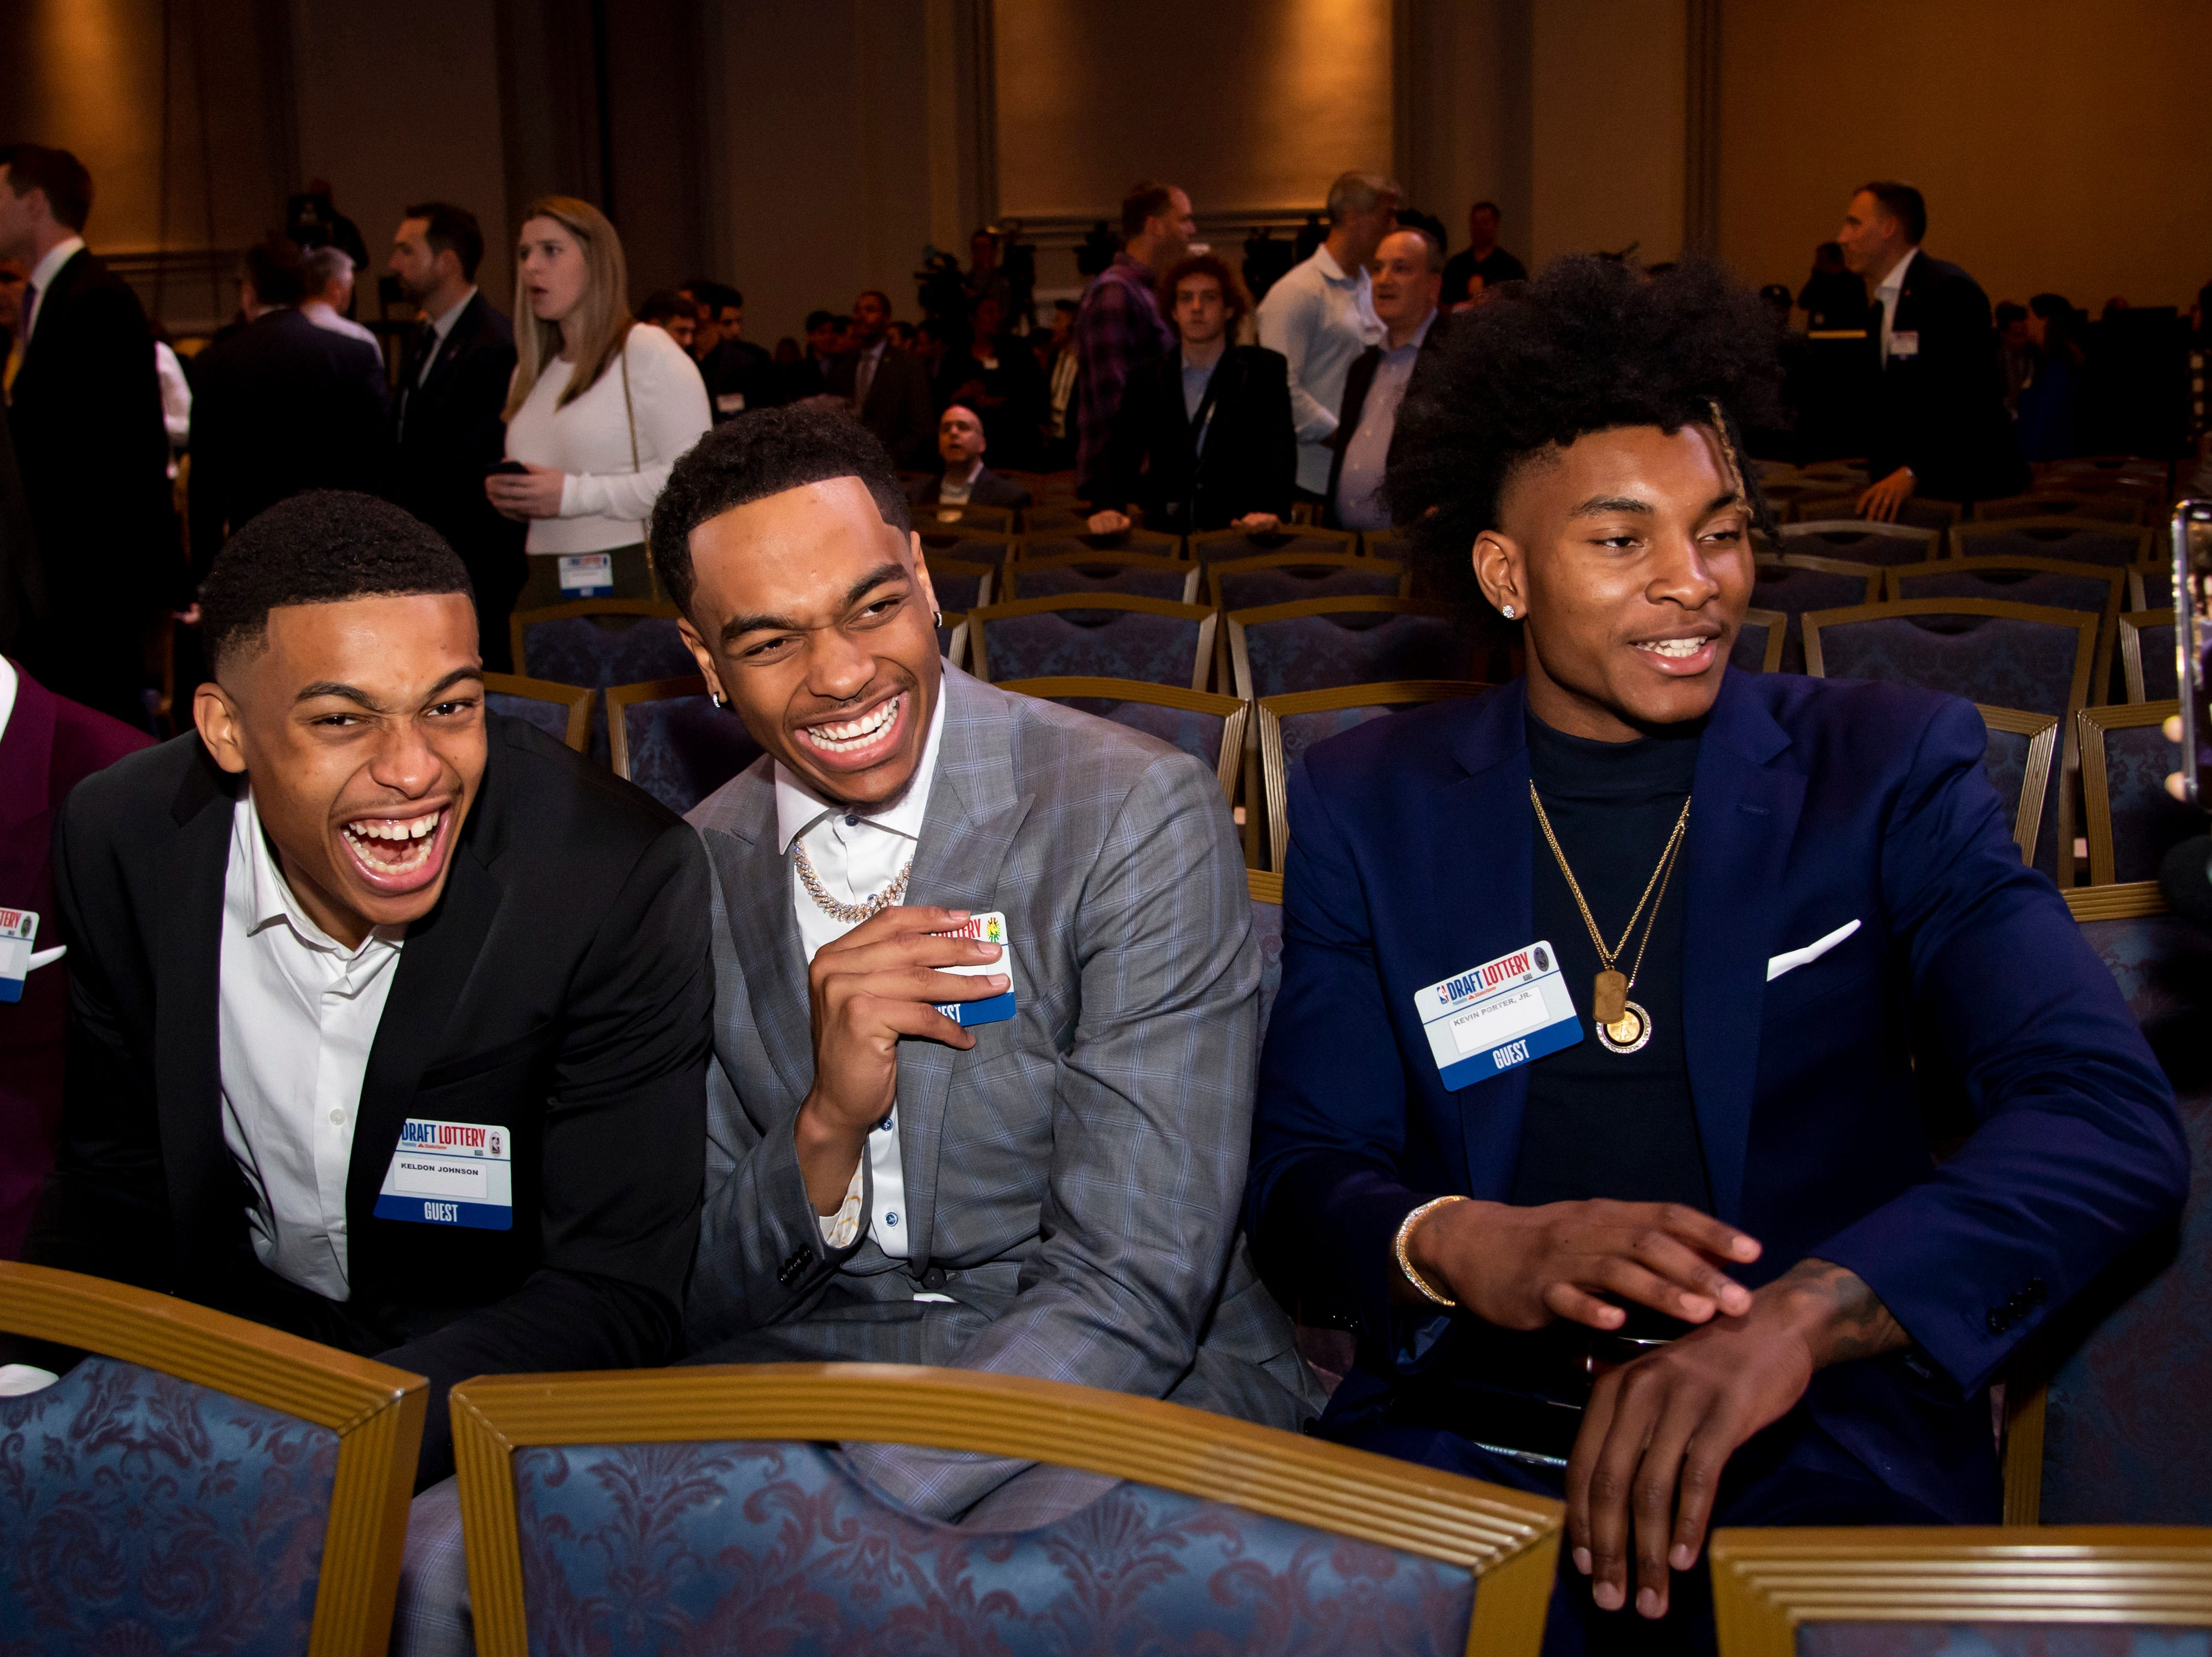 May 14, 2019; Chicago, IL, USA;  NBA top prospect Keldon Johnson (left) and PJ Washington (middle) and Kevin Porter Jr. are seen during the 2019 NBA Draft Lottery at the Hilton Chicago. Mandatory Credit: Patrick Gorski-USA TODAY Sports